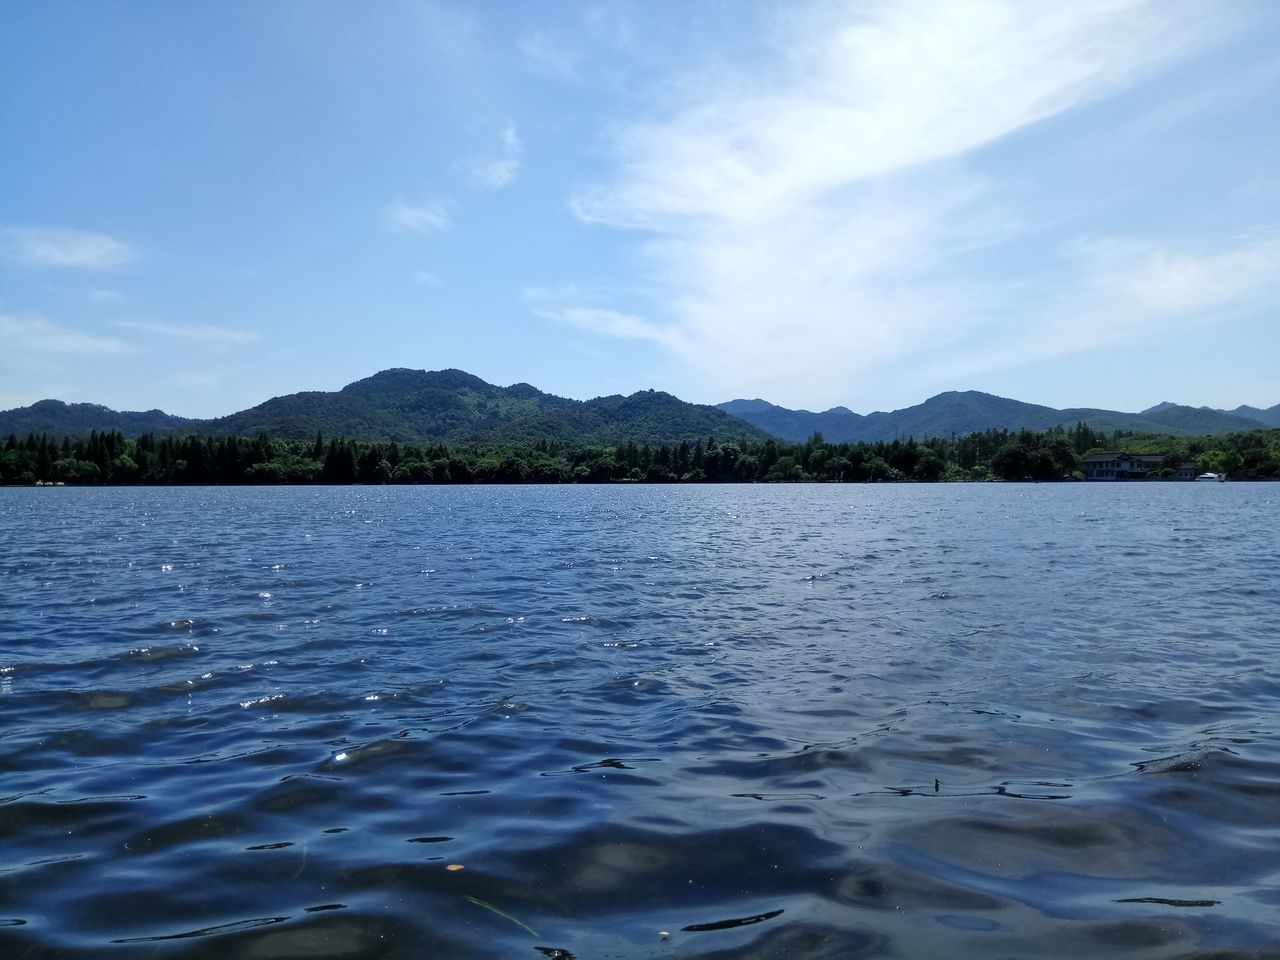 water, nature, tranquility, lake, beauty in nature, outdoors, scenics, sky, tranquil scene, mountain, day, cloud - sky, no people, waterfront, blue, mountain range, tree